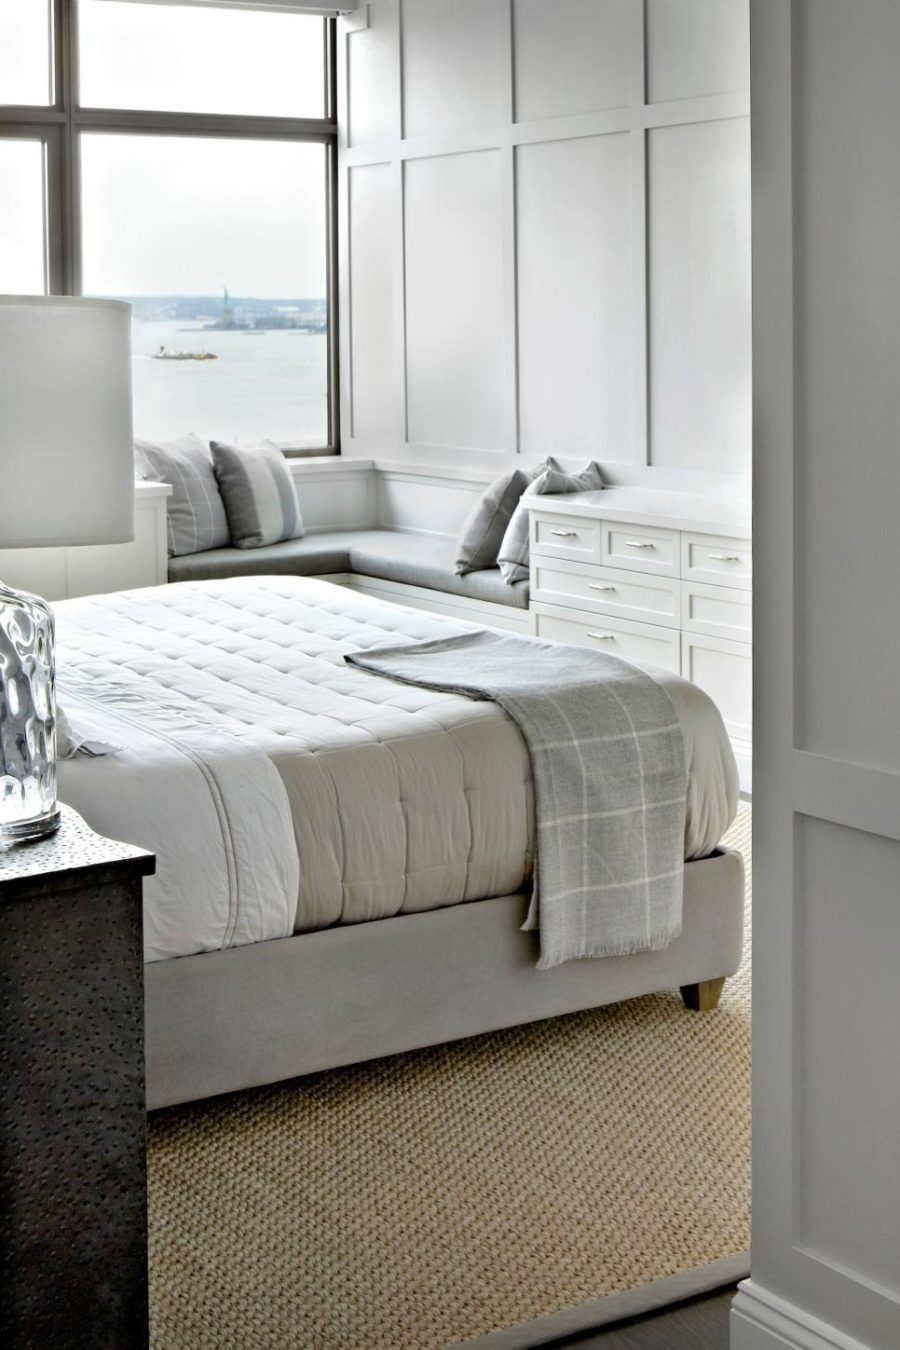 Best Modern Bedroom Designs Inspirational View Gallery Susana though Tiny Contemporary Bedroom Ideas